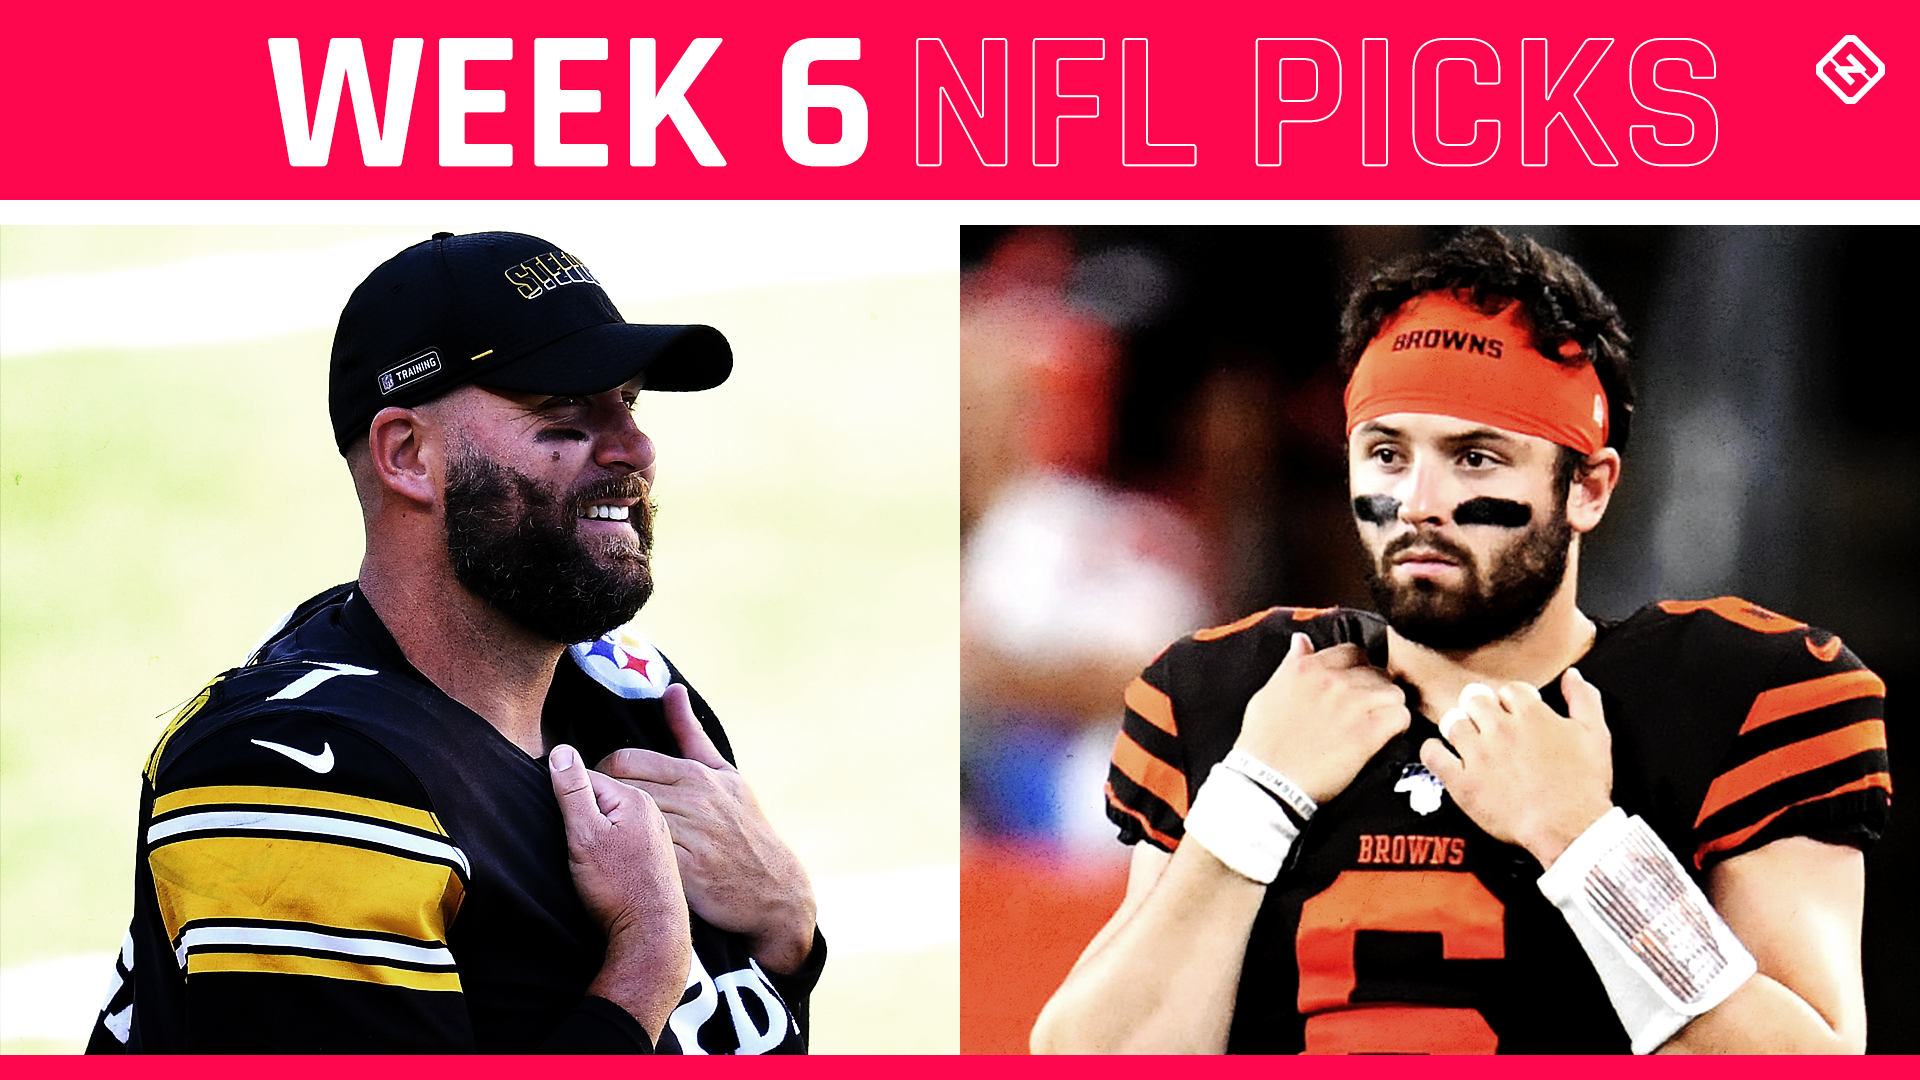 NFL expert picks, predictions for Week 6 straight up